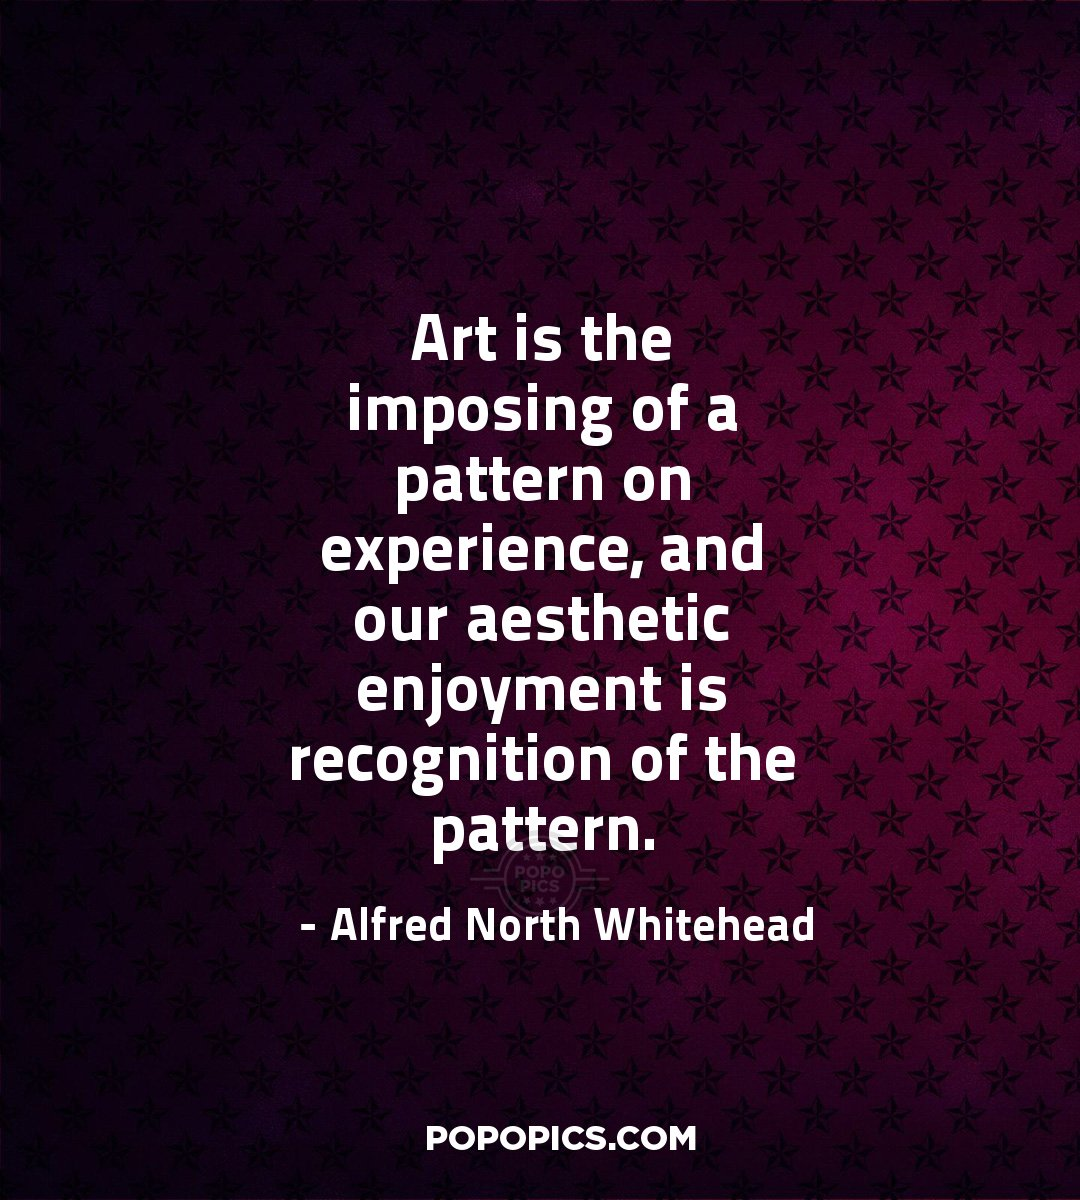 alfred north whitehead quotes - photo #30